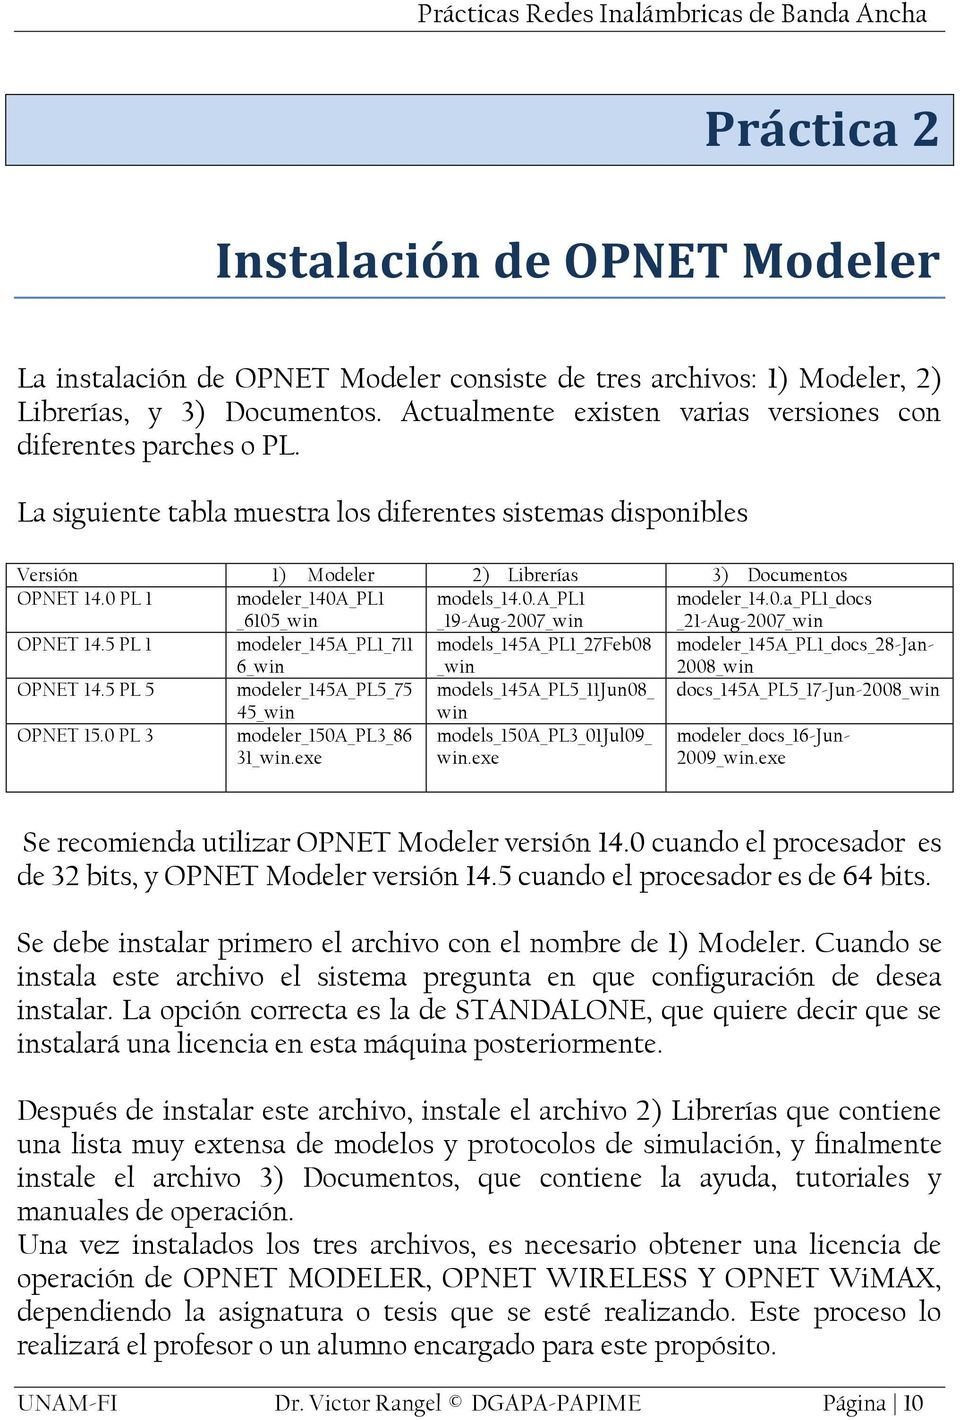 0 PL 1 modeler_140a_pl1 _6105_win models_14.0.a_pl1 _19-Aug-2007_win modeler_14.0.a_pl1_docs _21-Aug-2007_win OPNET 14.